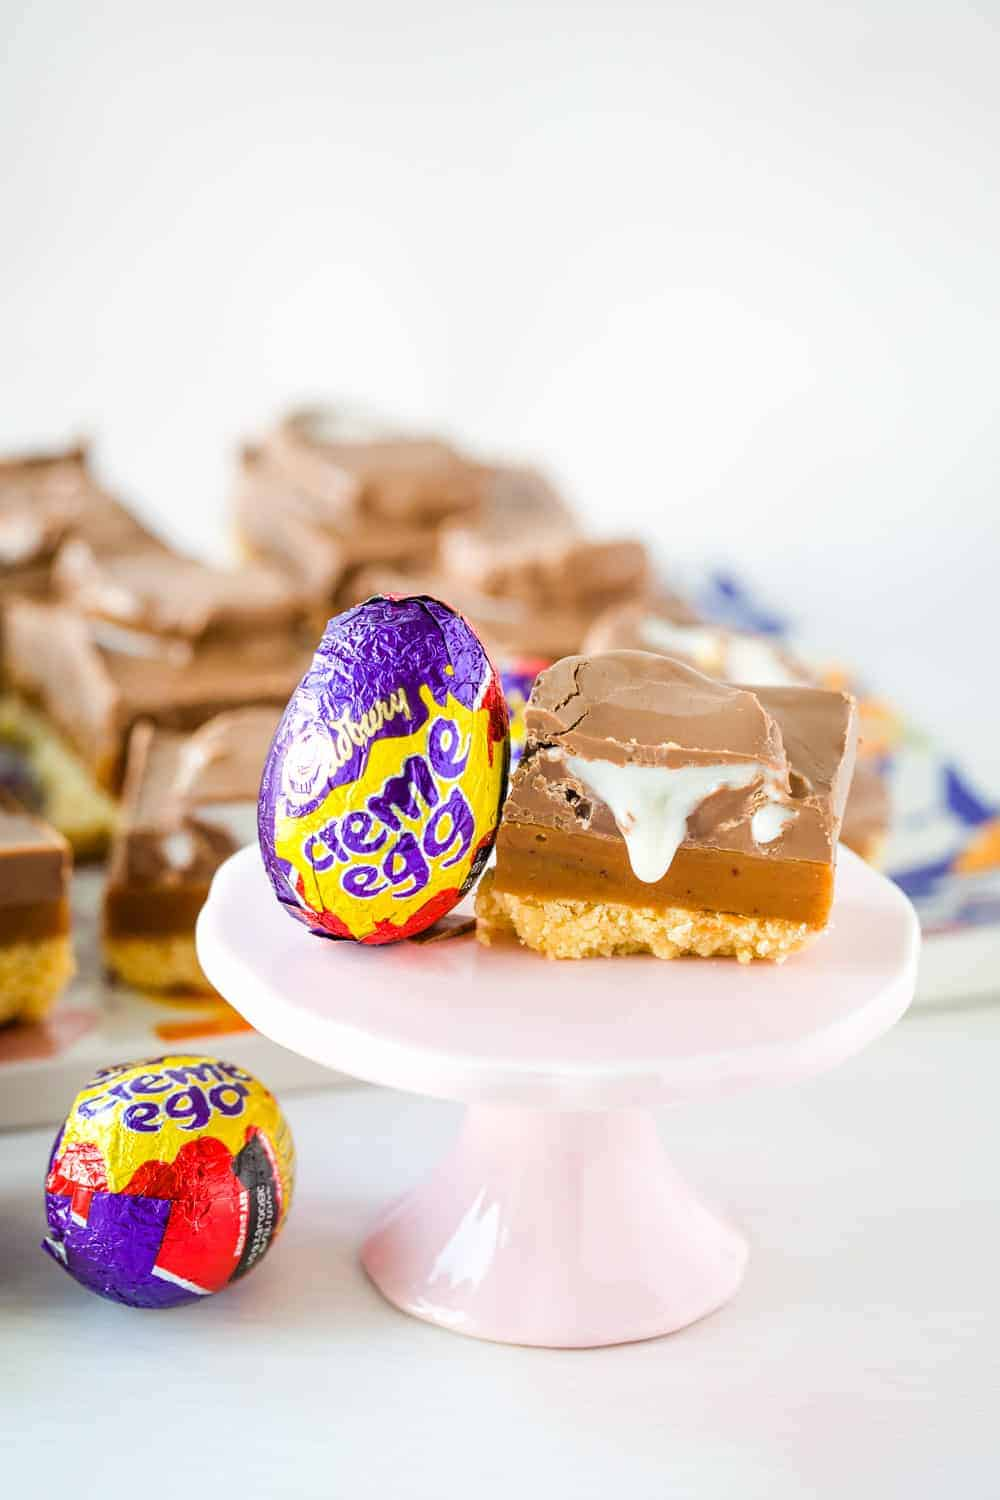 A slice of creme egg caramel shortbread